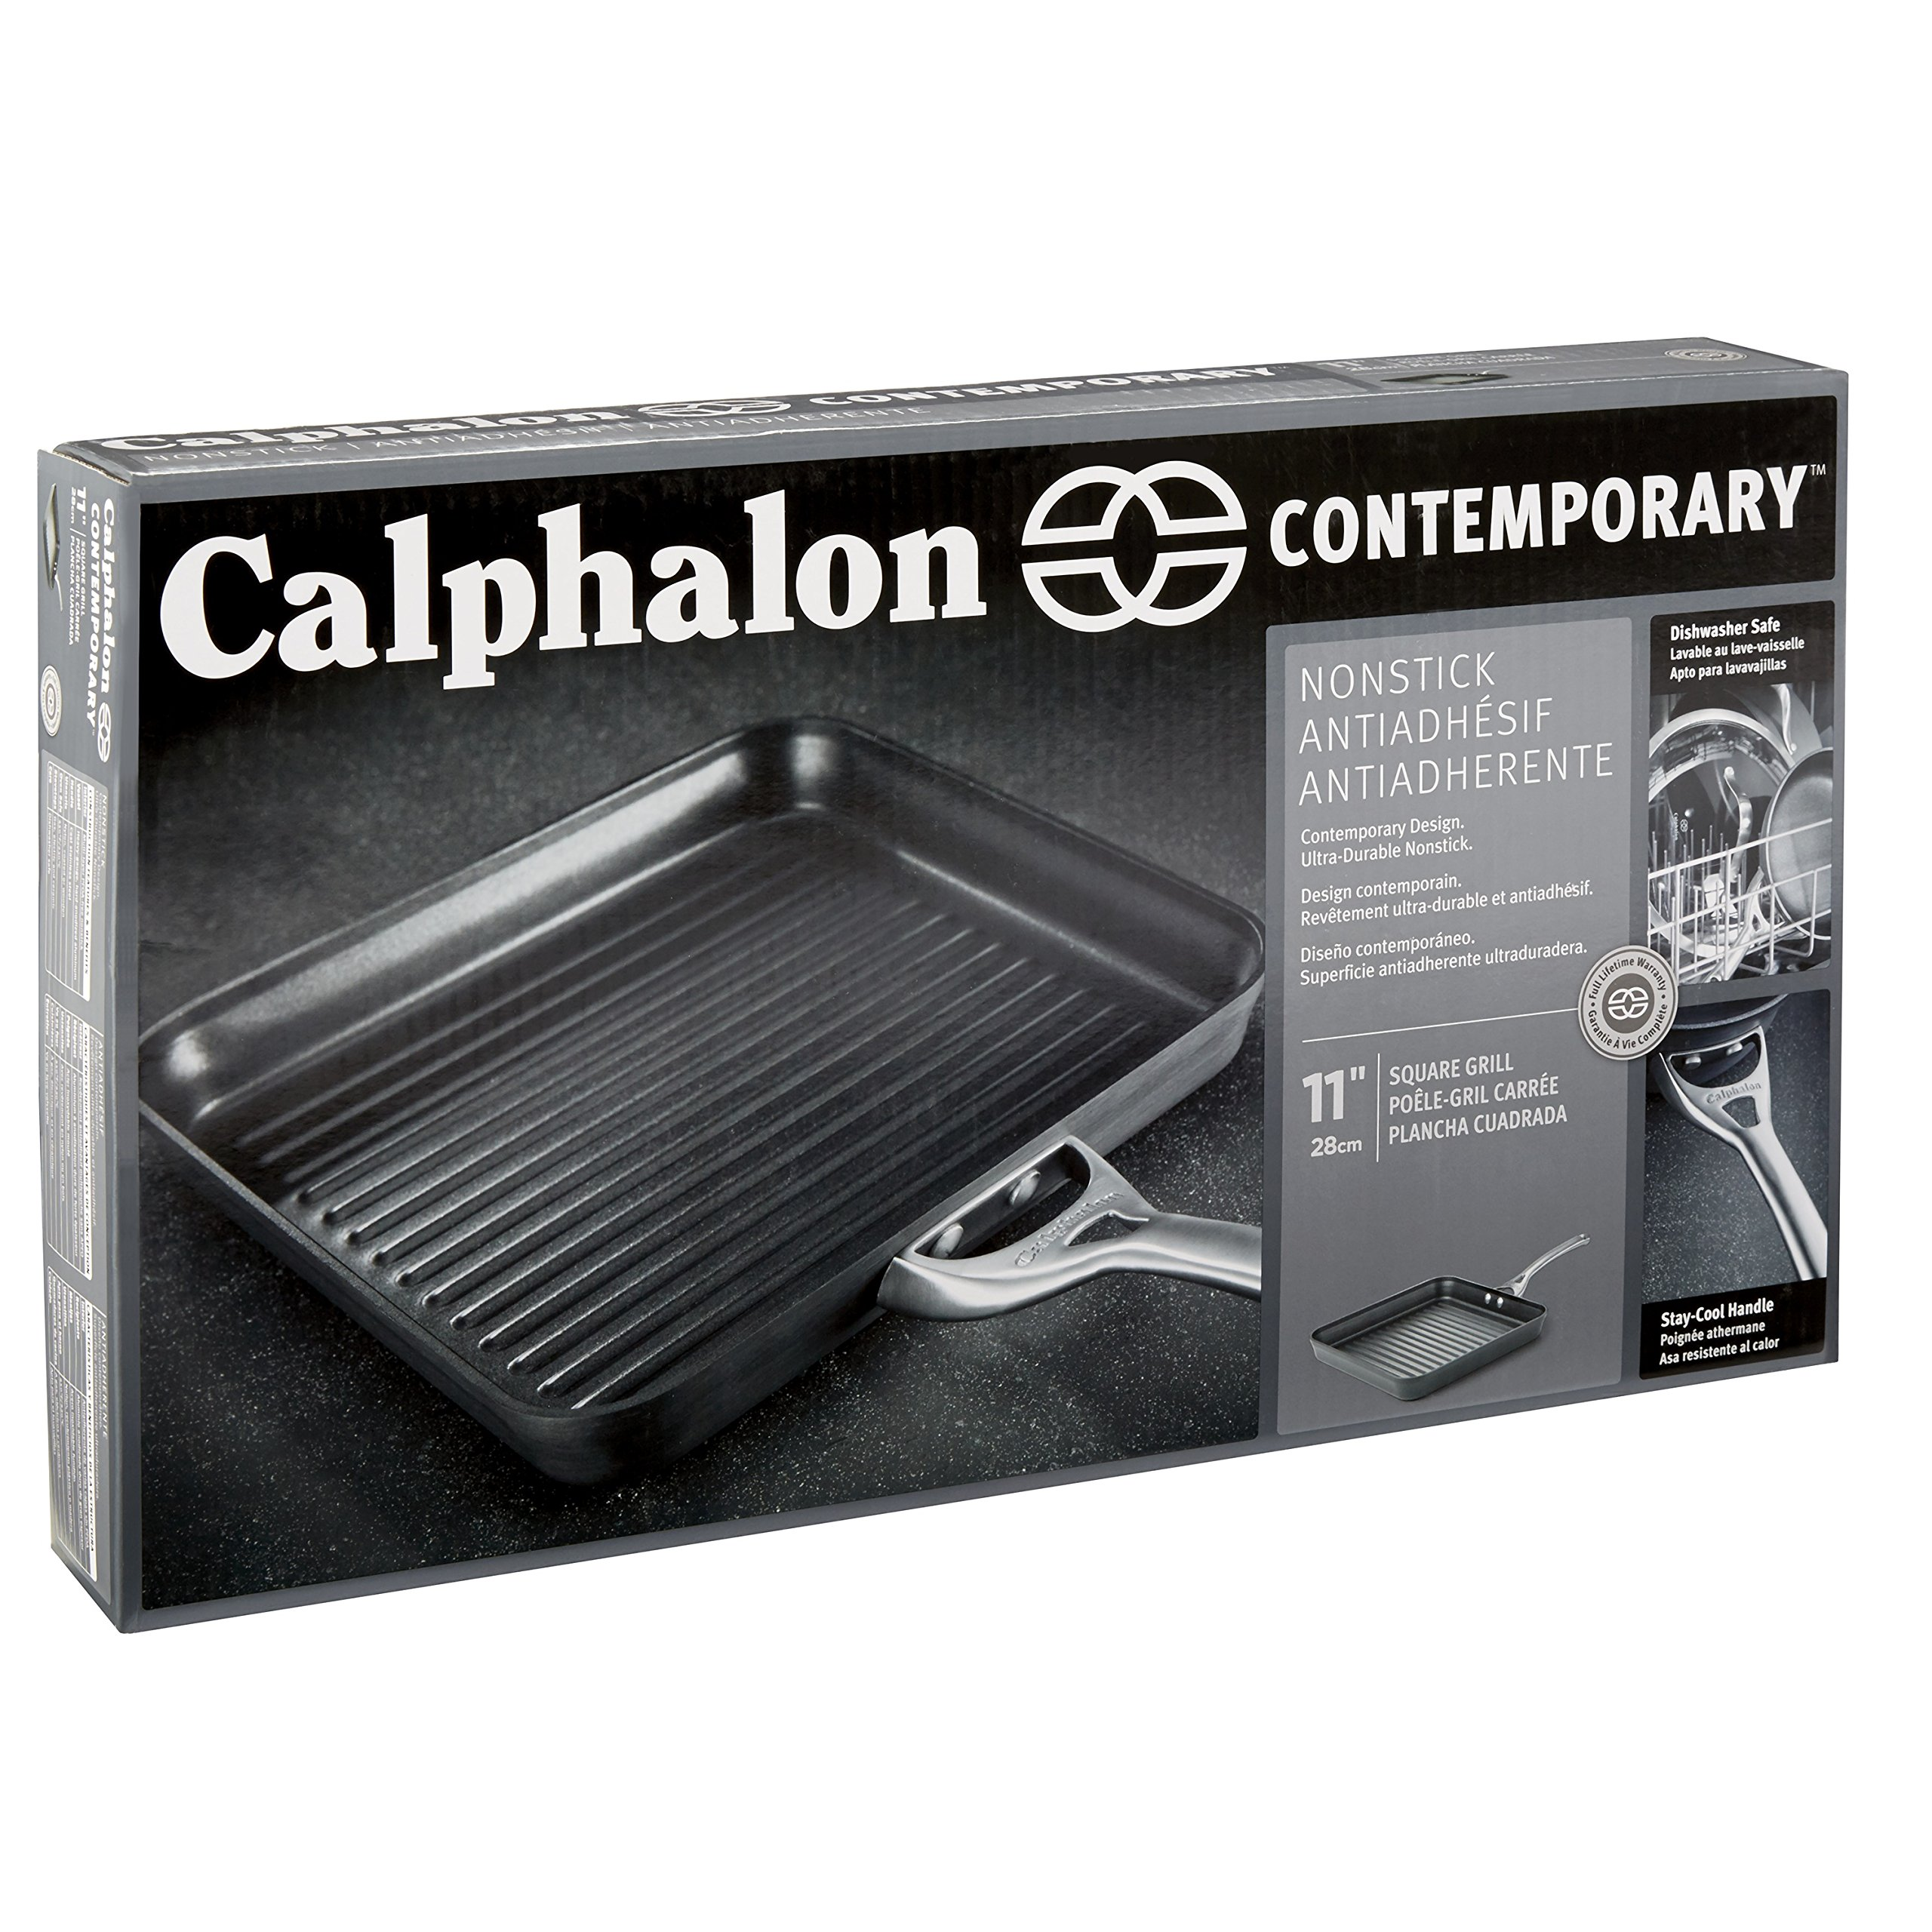 Calphalon Contemporary Hard-Anodized Aluminum Nonstick Cookware, Square Grill Pan, 11-inch, Black by Calphalon (Image #6)